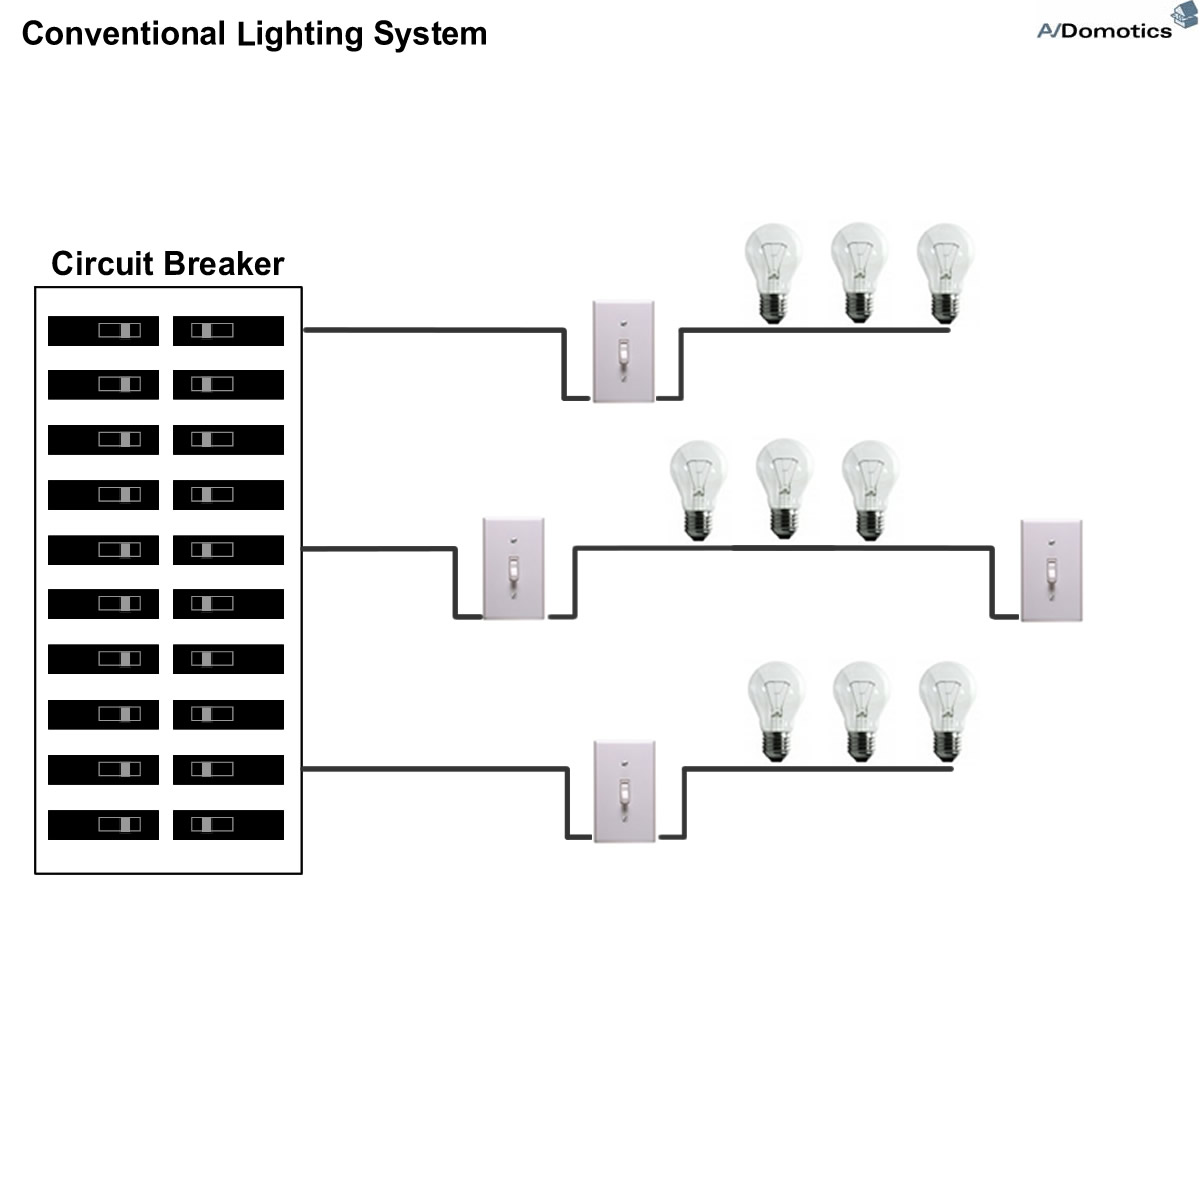 wiring diagram for home automation tekonsha voyager specs lighting library